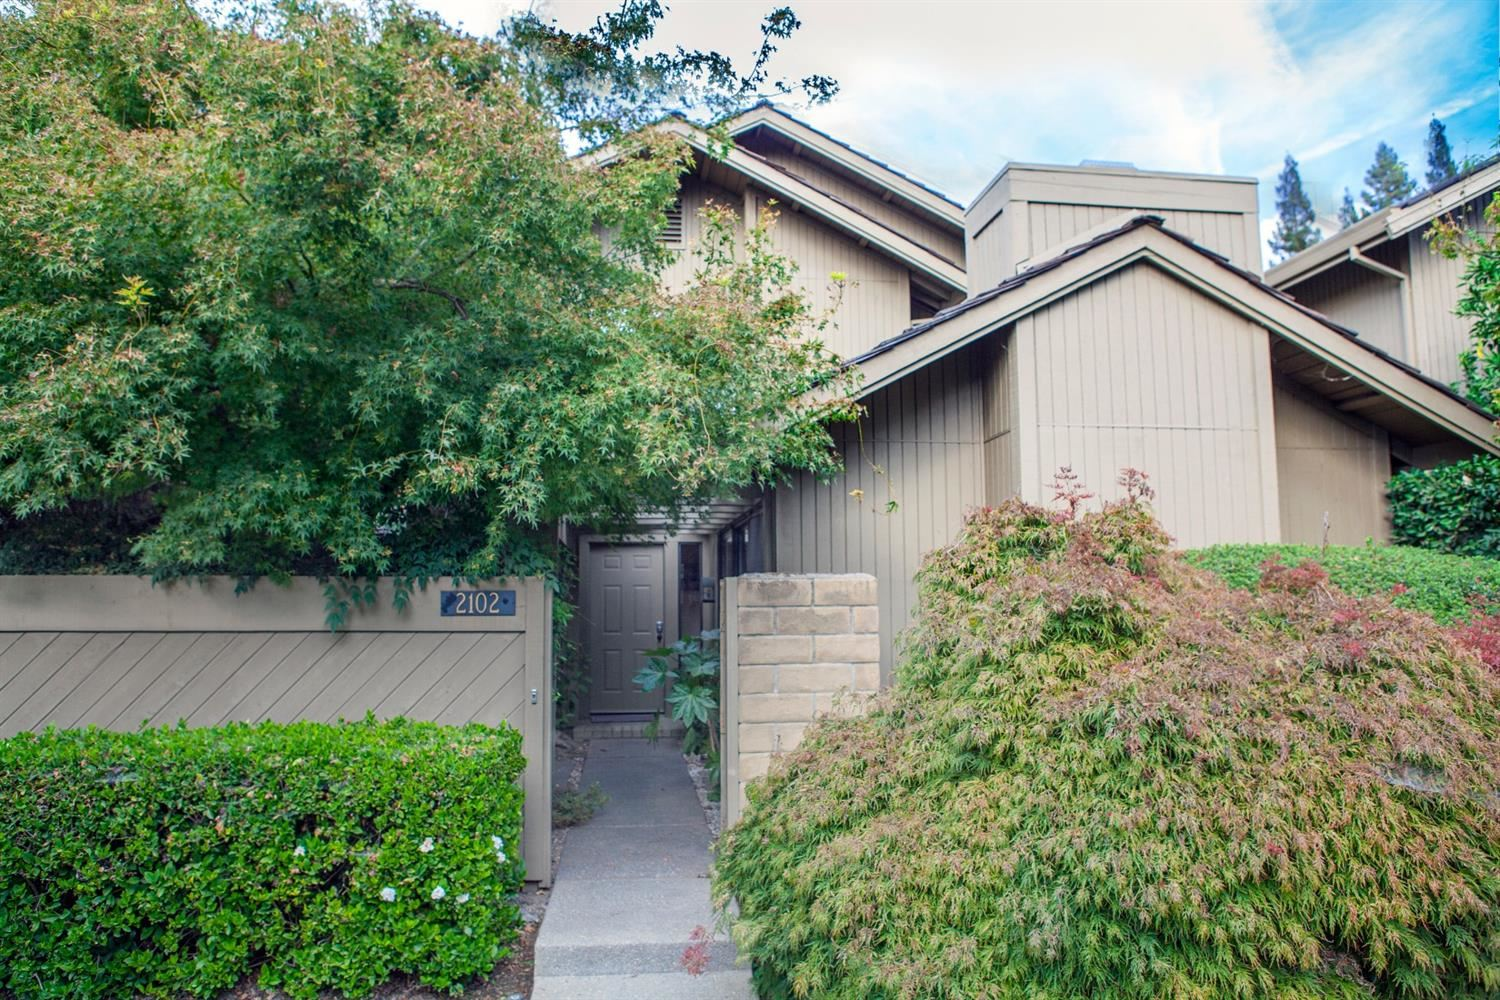 Photo of 2102 Promontory Point Lane, Rancho Cordova, CA 95670 (MLS # 20062811)